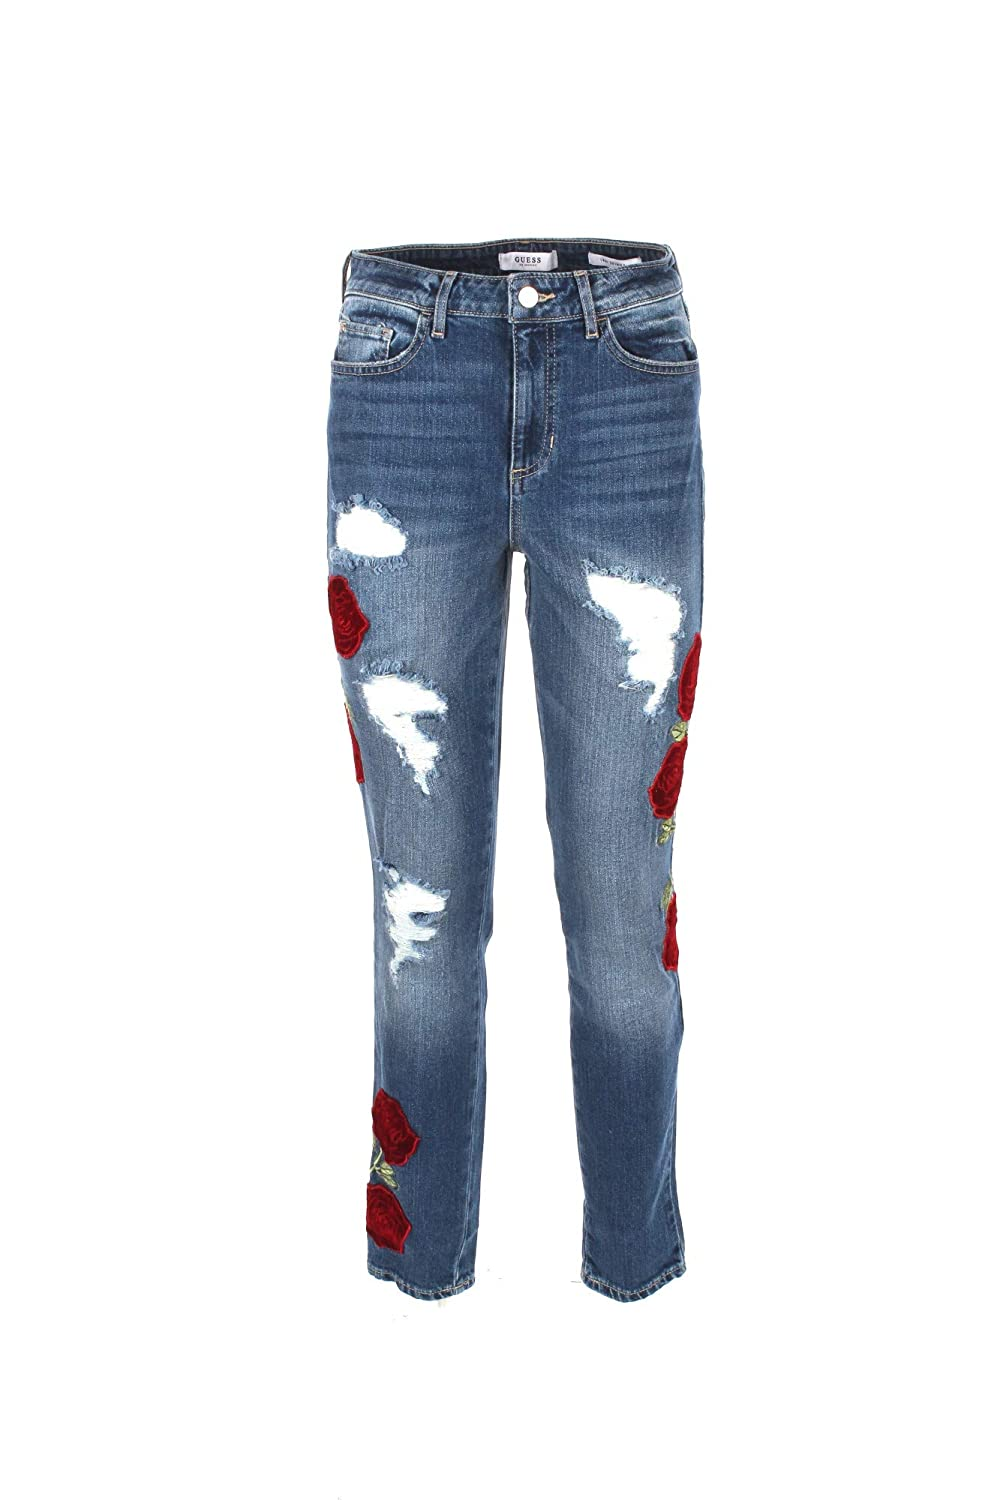 Guess Jeans Donna 29 Denim W83ab4 D2mp0 Autunno Inverno 2018/19